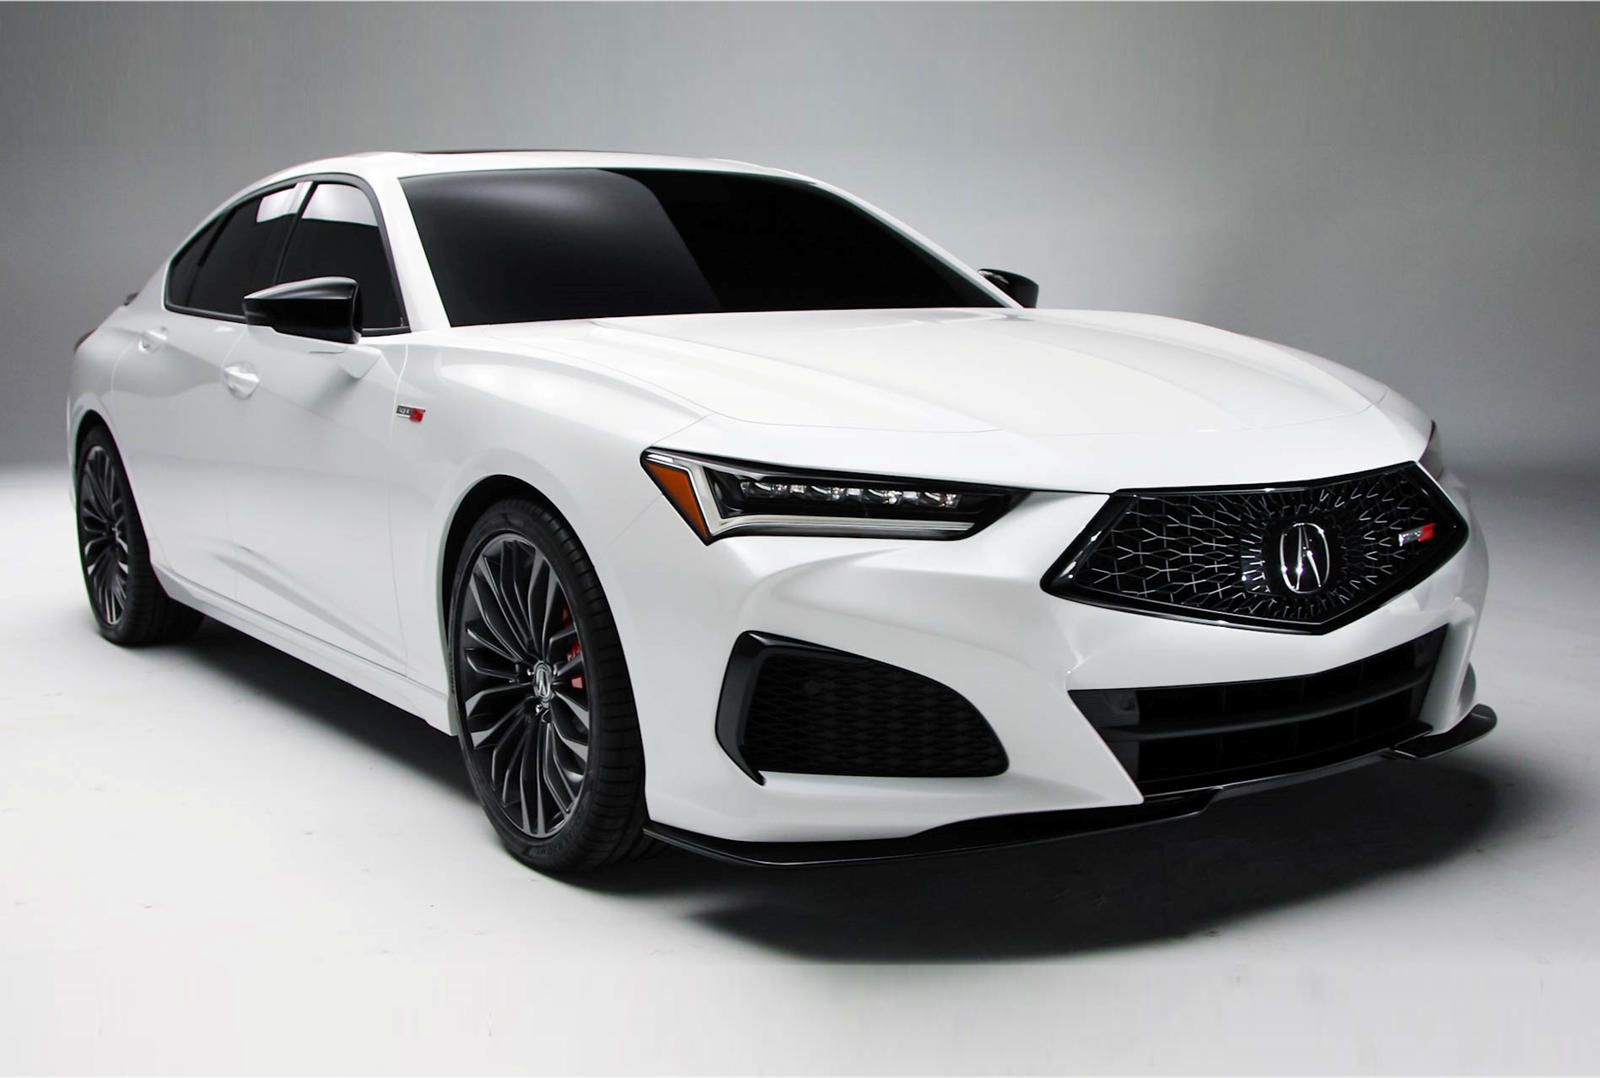 2021 Acura Tlx Type S Power Outputs Confirmed The Japanese Sport Sedan Outmuscles The Audi S4 Acura Tlx Acura Acura Coupe